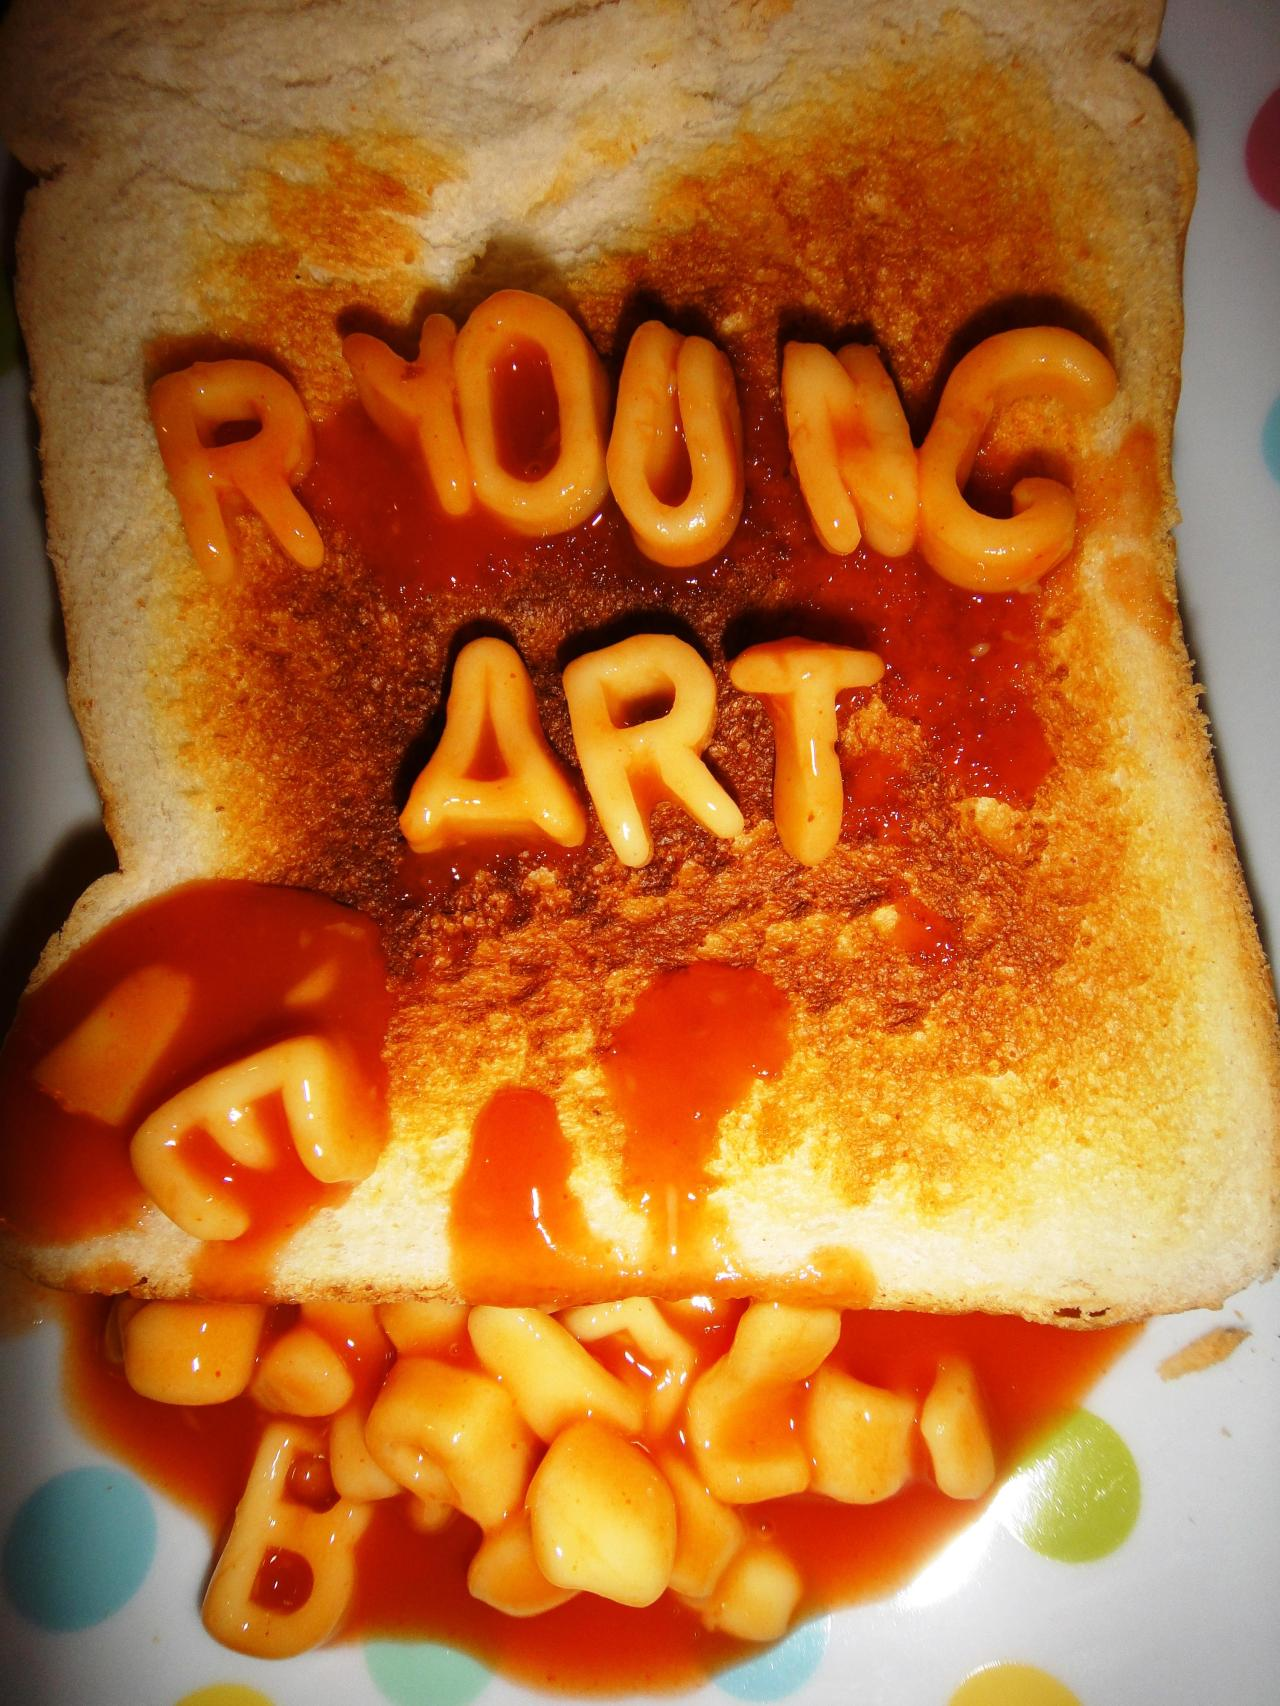 r-young-art-alphabet-toast